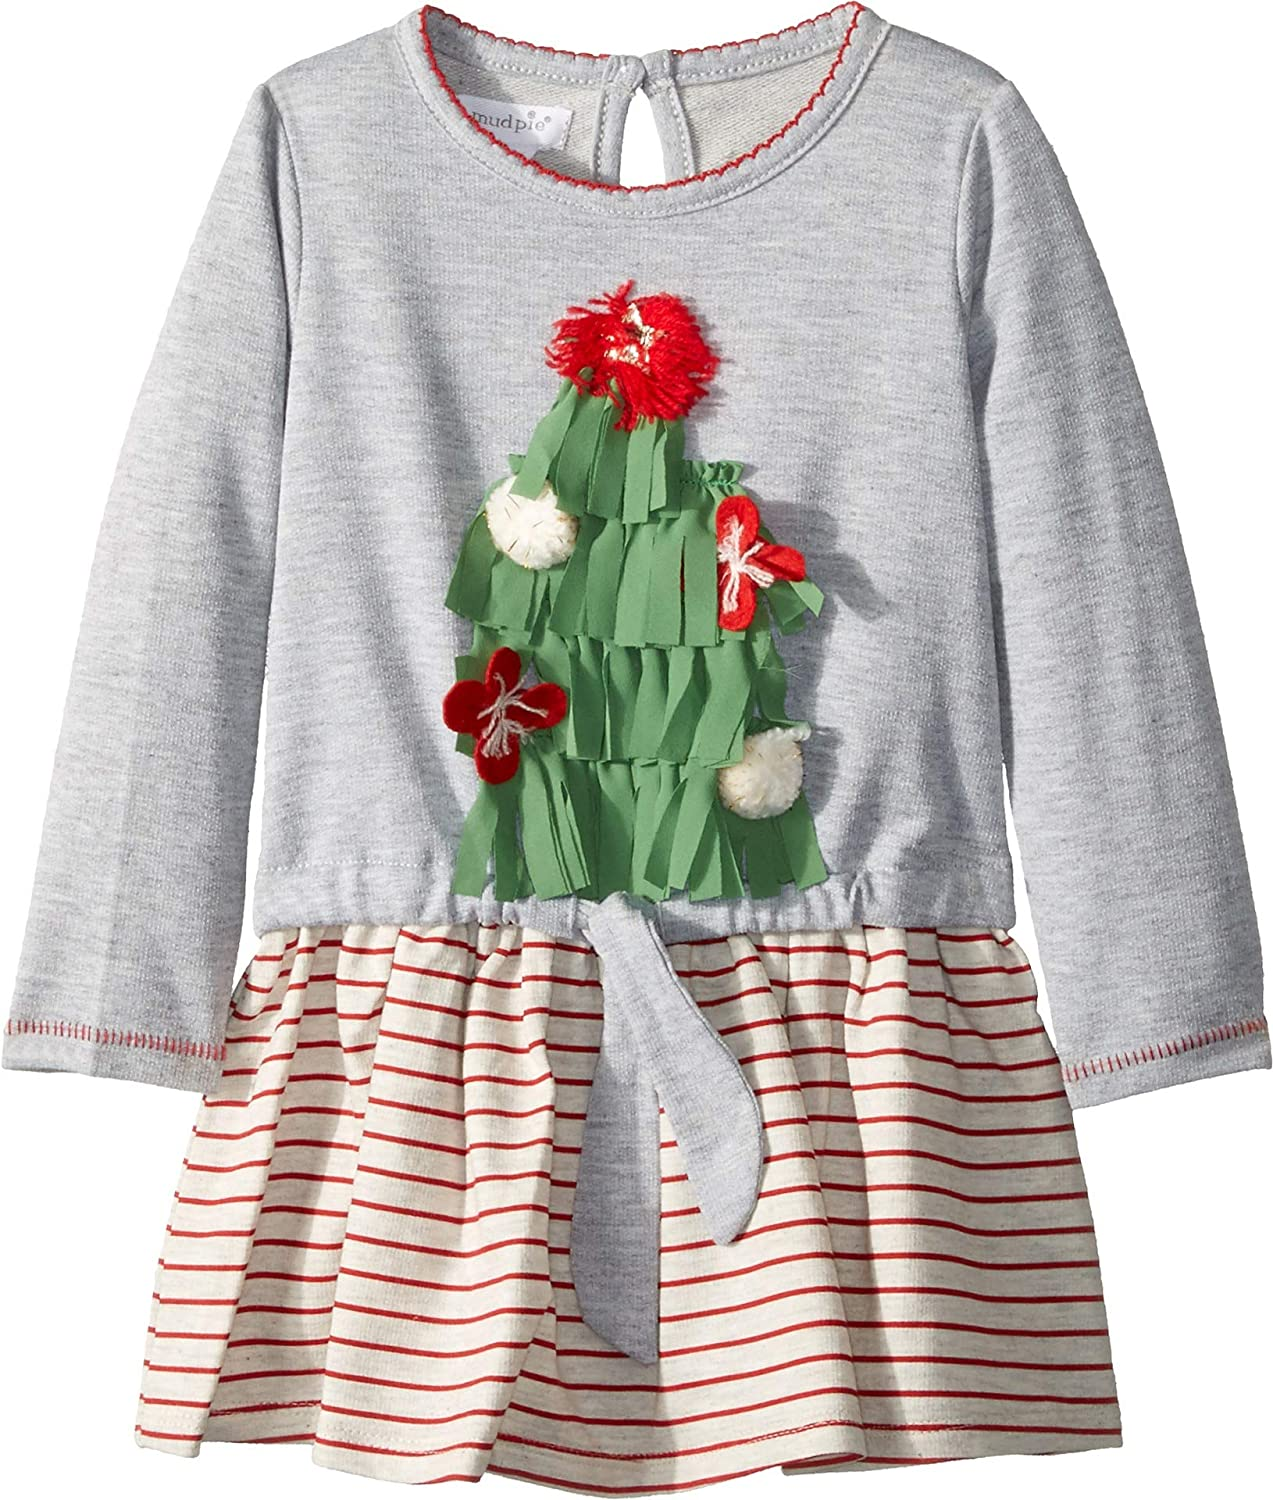 Mud Pie Womens Christmas Very Merry Dress (Infant/Toddler)